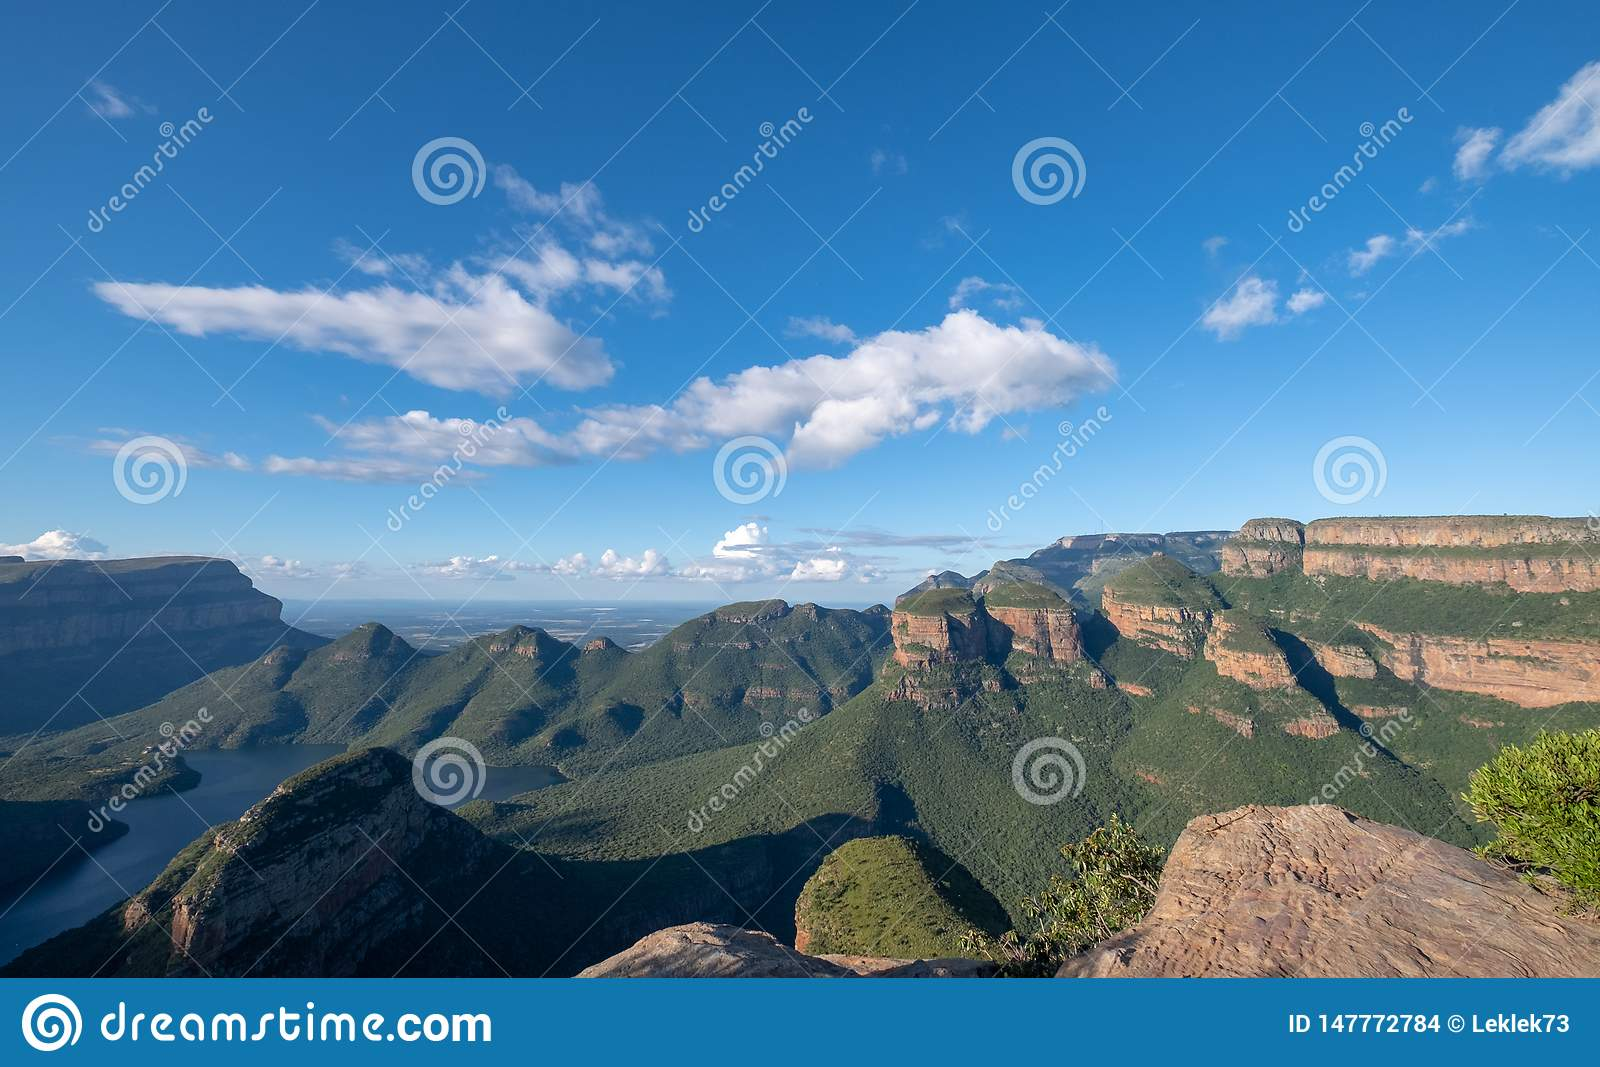 Panorama of the Blyde River Canyon on the Panorama Route, Mpumalanga, South Africa